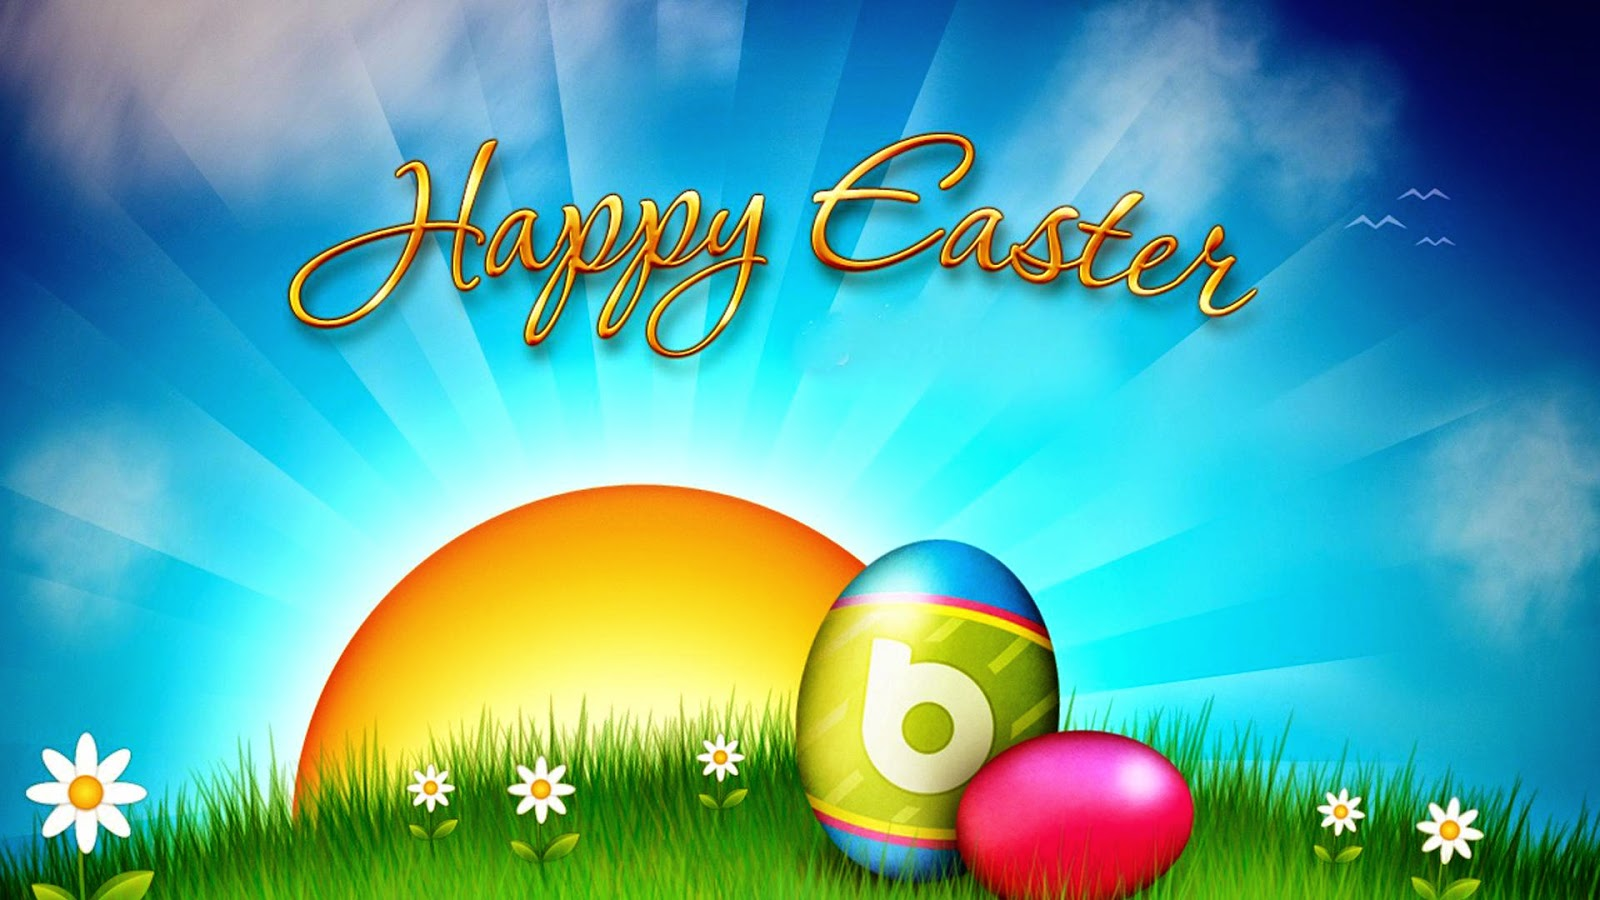 Best happy easter quotes wishes images whatsapp facebook easter hd images cards greetings 2018 kristyandbryce Images